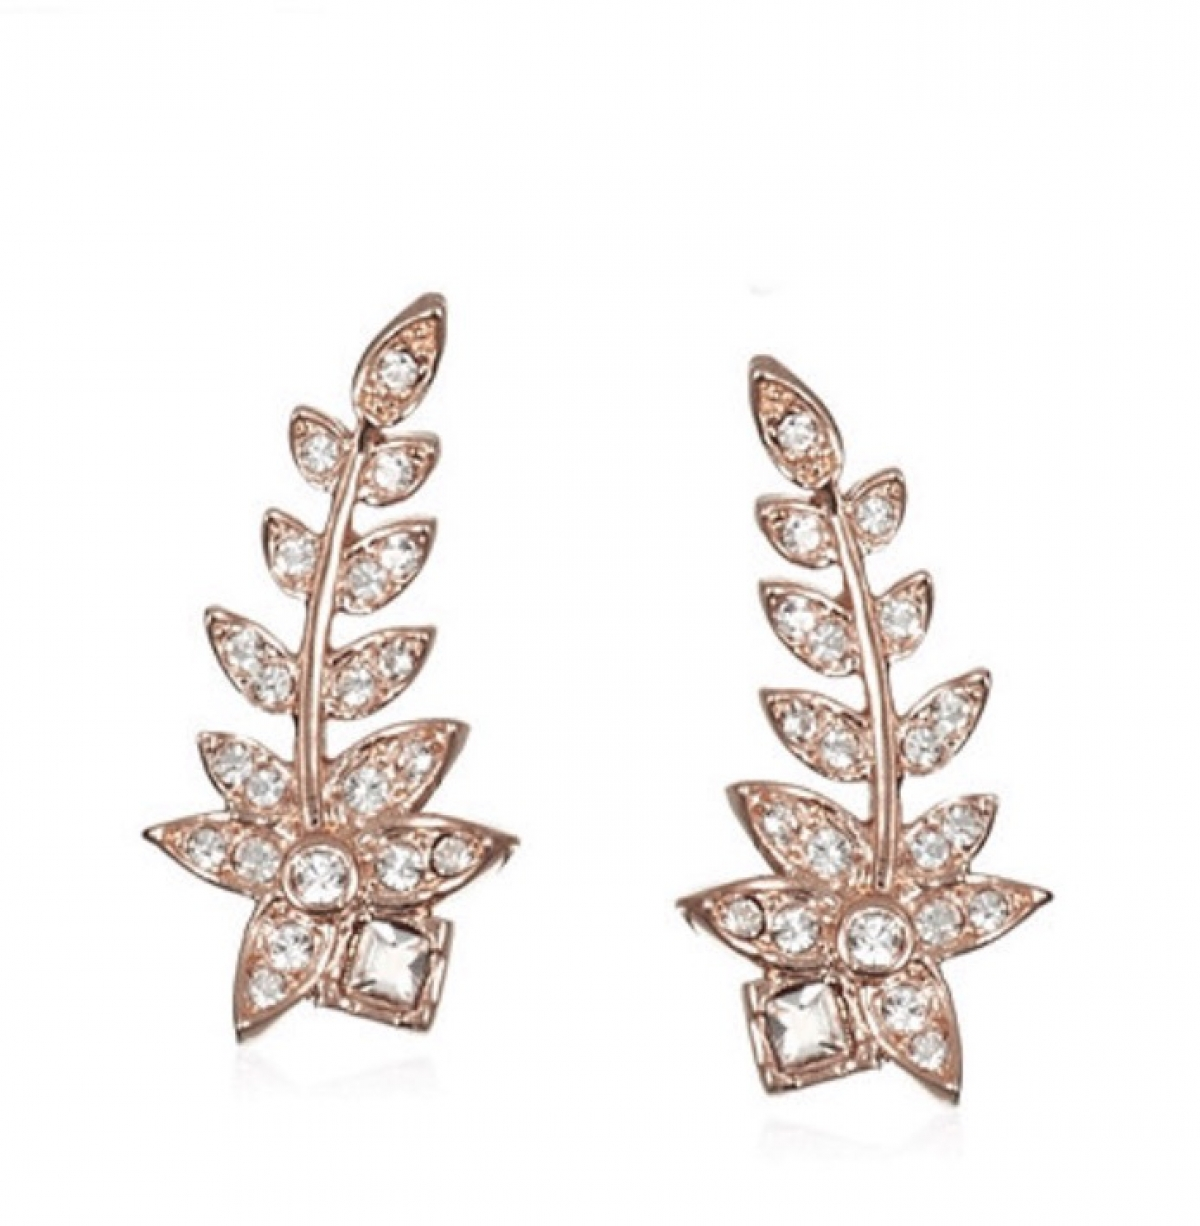 Crystal Fern Ear Climber Earrings Rose Gold